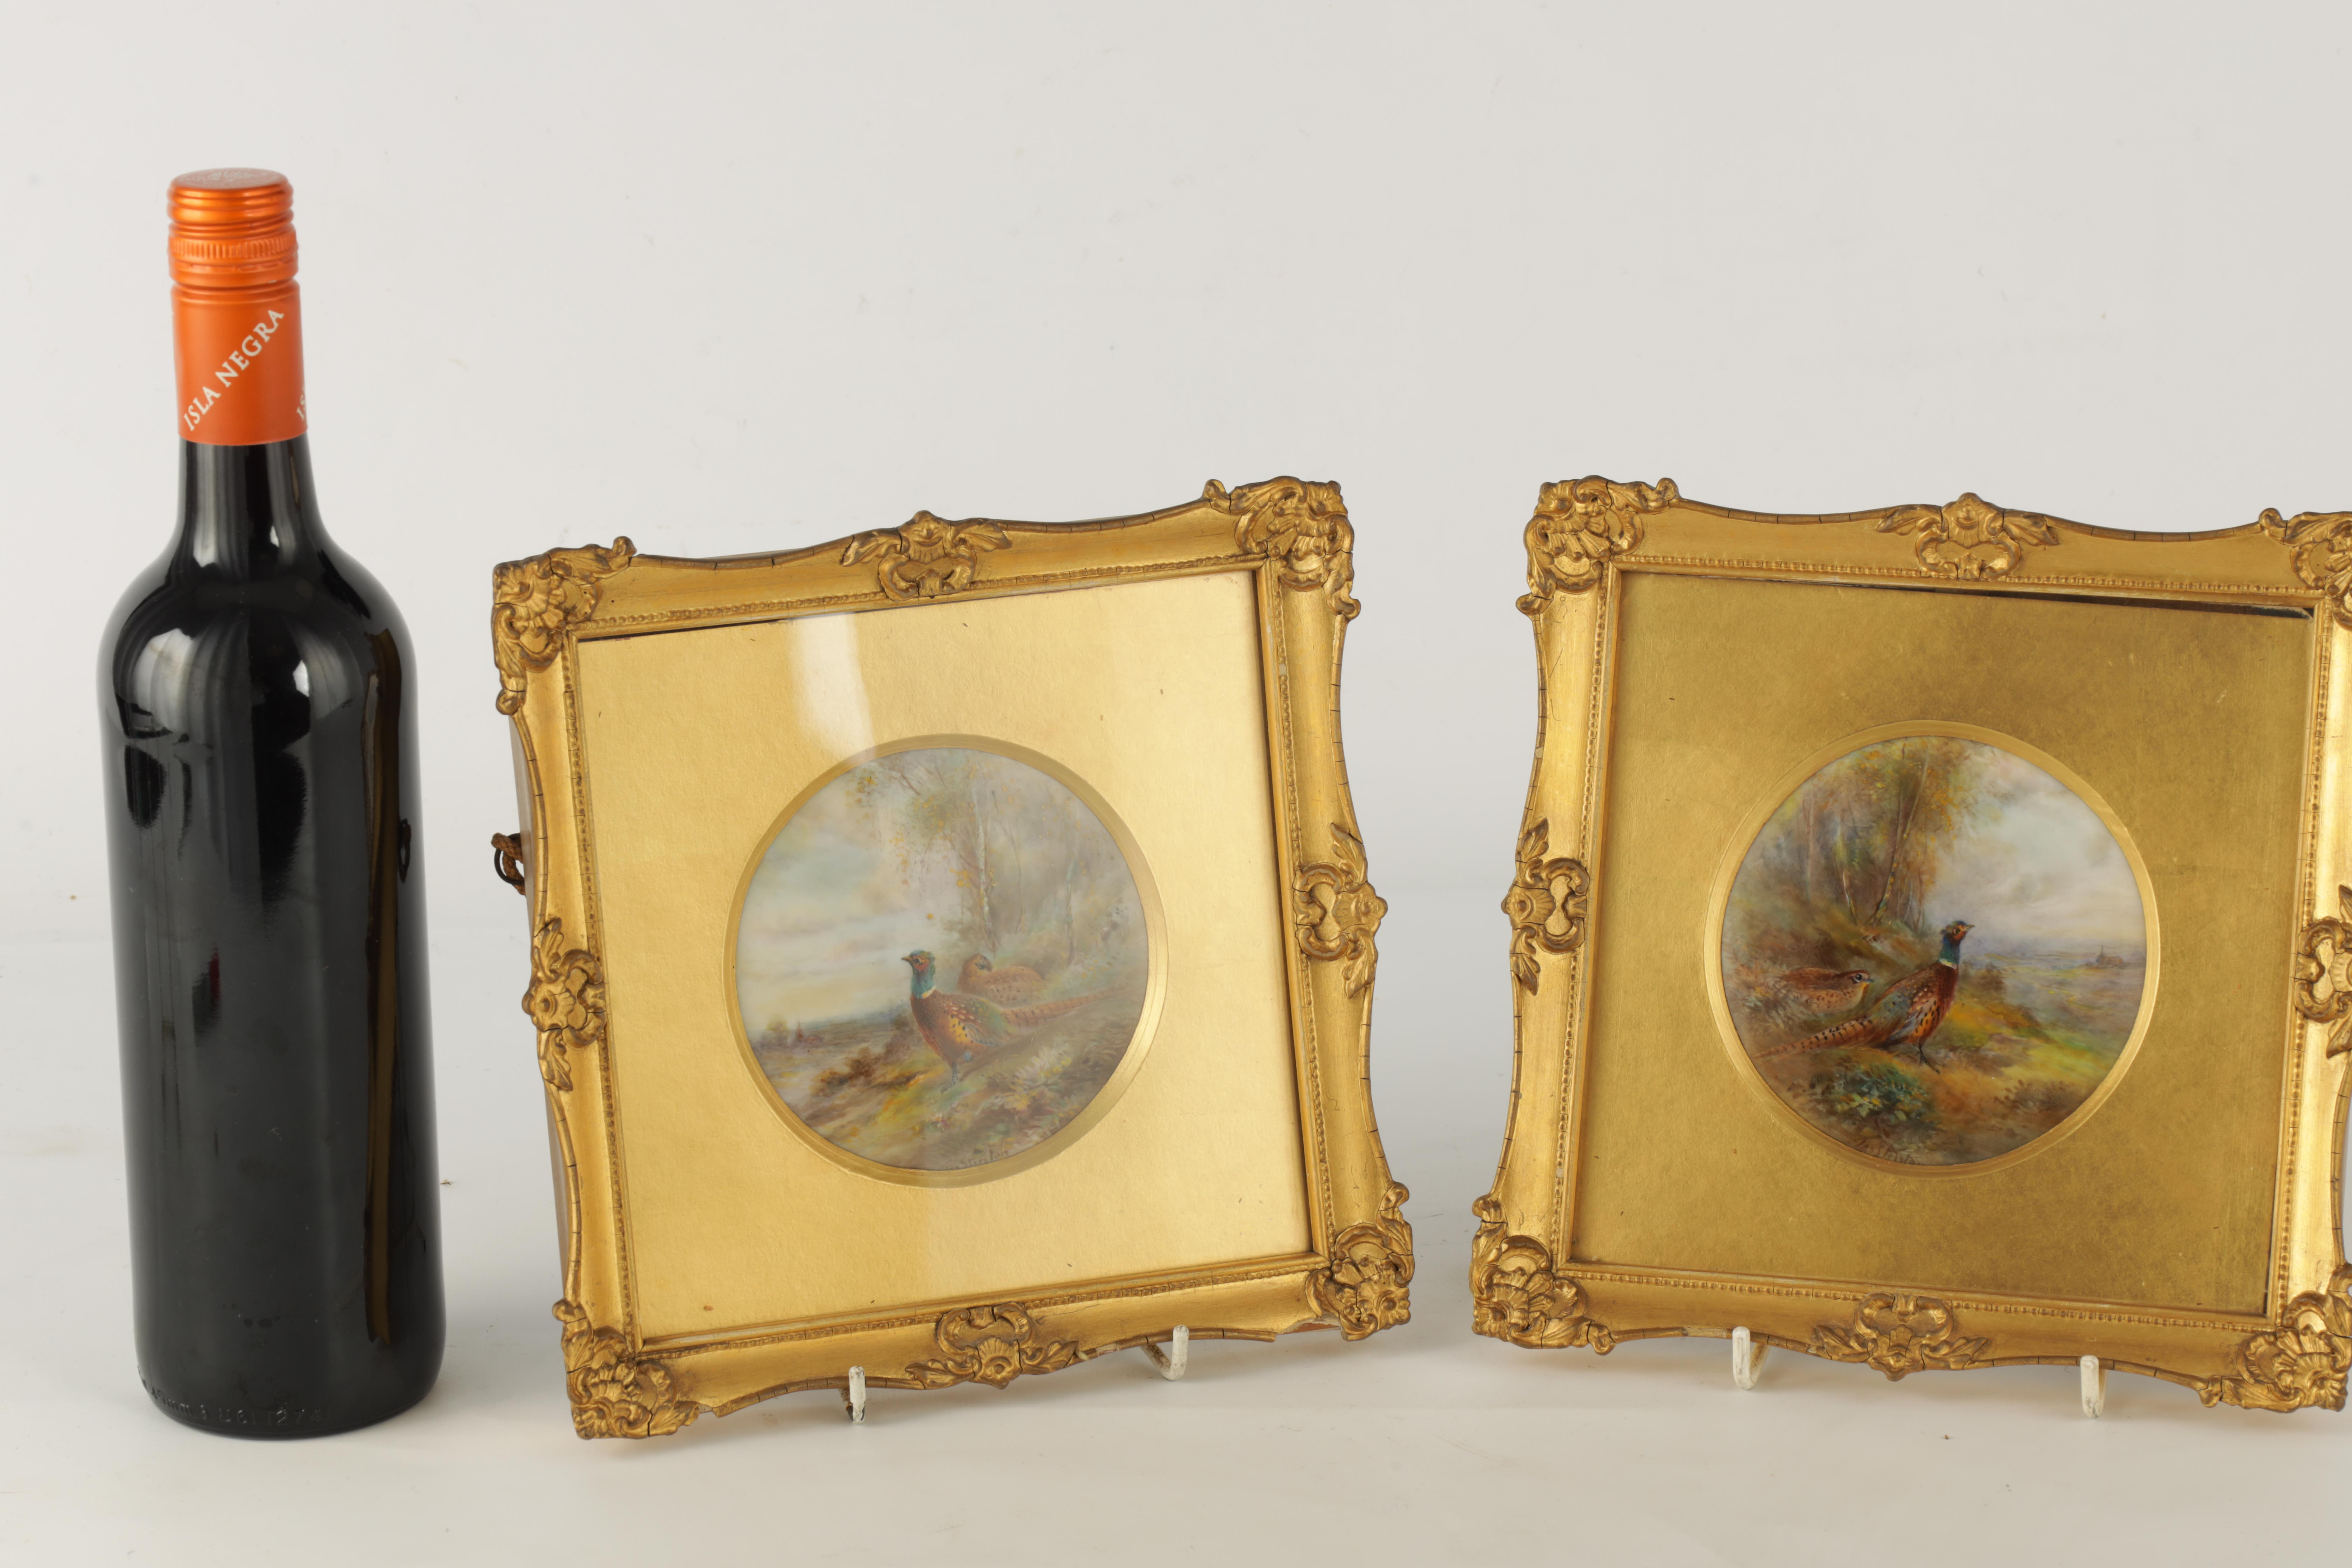 JAMES STINTON 1870-1961. A SIGNED PAIR OF ROYAL WORCESTER CIRCULAR PORCELAIN PLAQUES painted with - Image 2 of 8